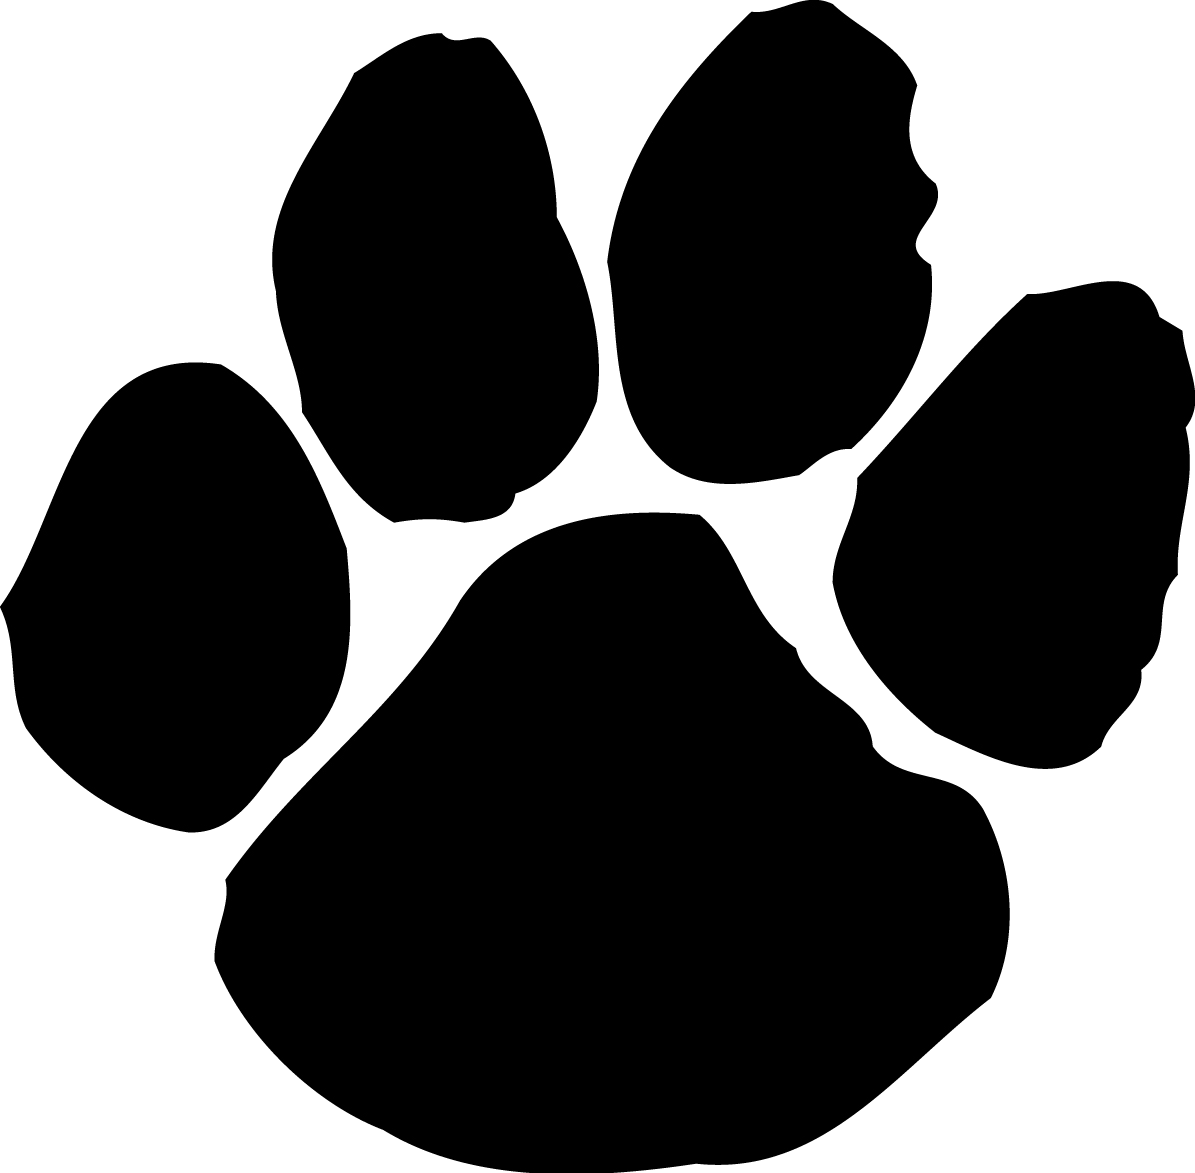 Paw Print Tattoos On Dog Prints Scroll Clipart Transparent Png.